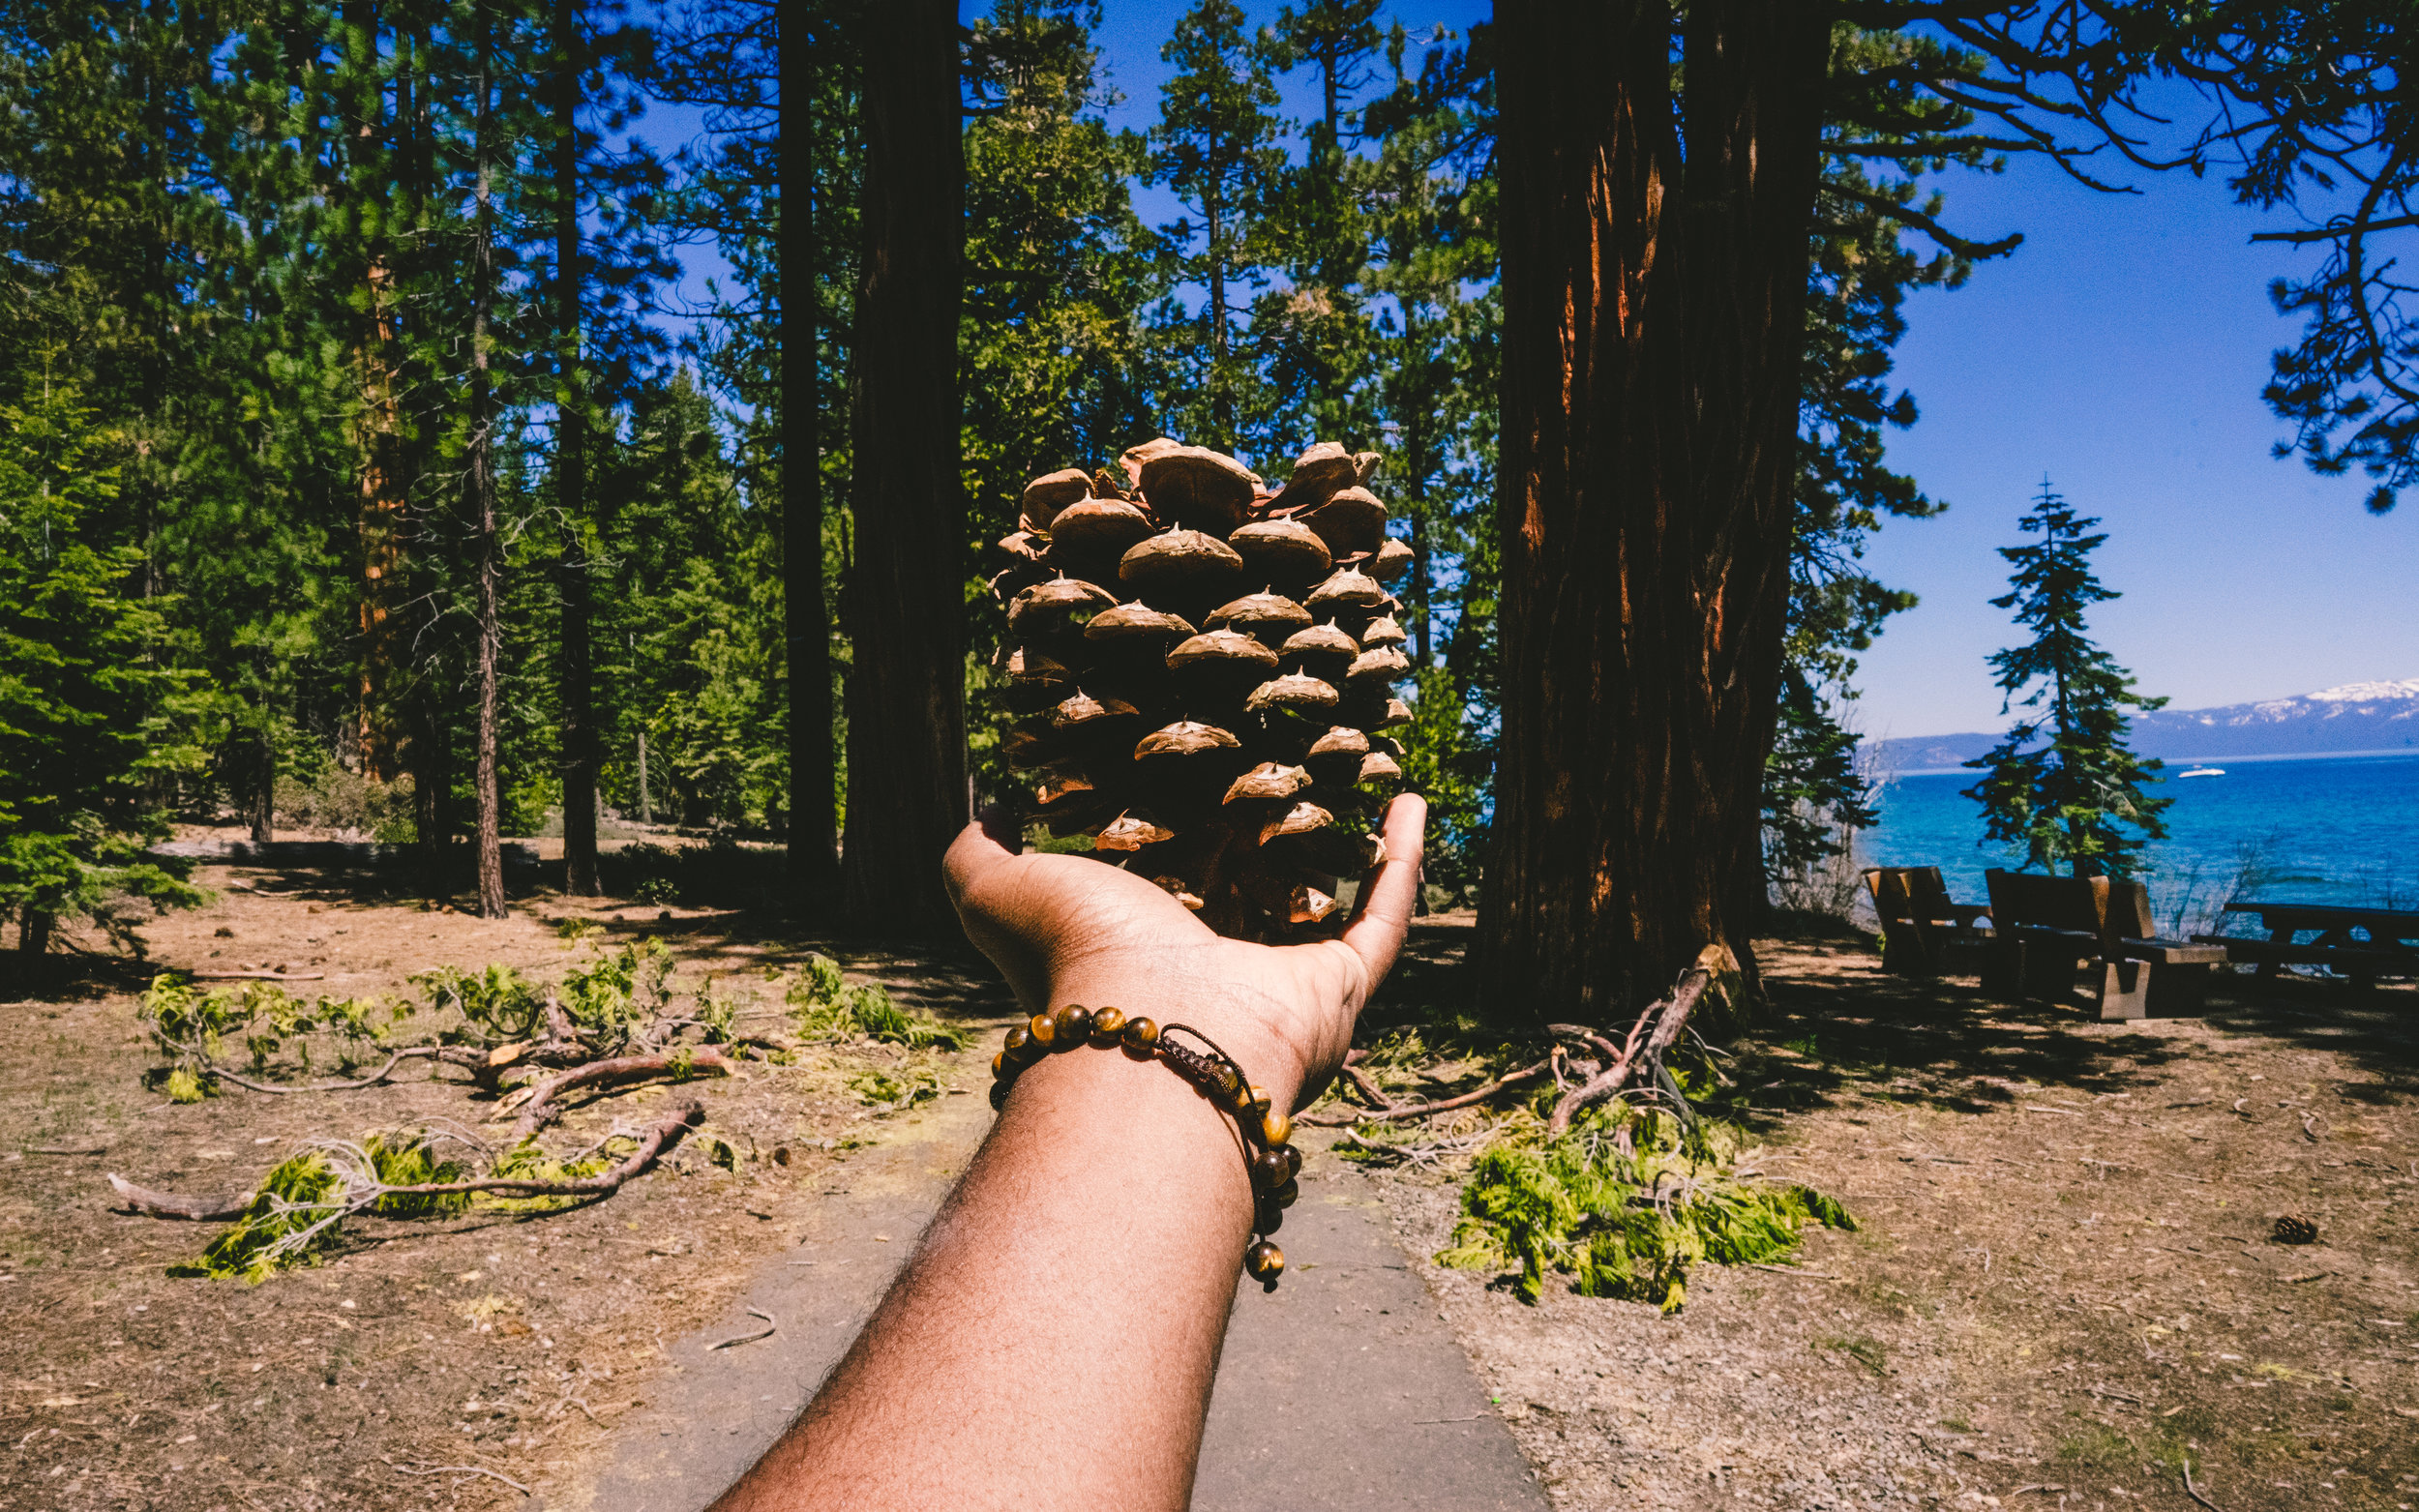 These type of shots always look so cool when I see it on IG. Oh well. P.S. this exact pine cone is in my living room right now.